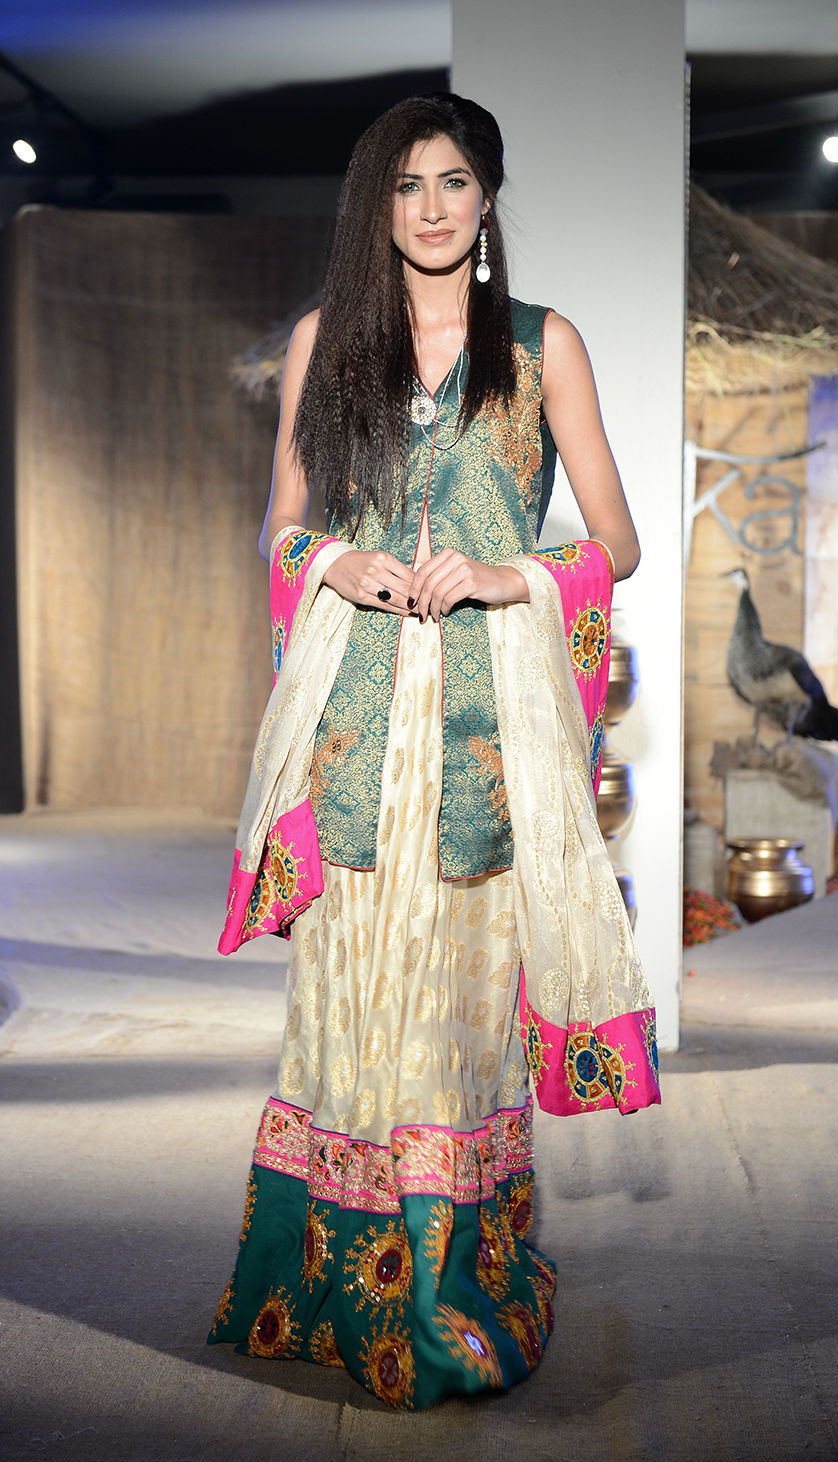 Taanka a brand dedicated to highlighting the arts and crafts of Interior Sindh launches at PFDC Fashion Active in Lahore (10).jpg